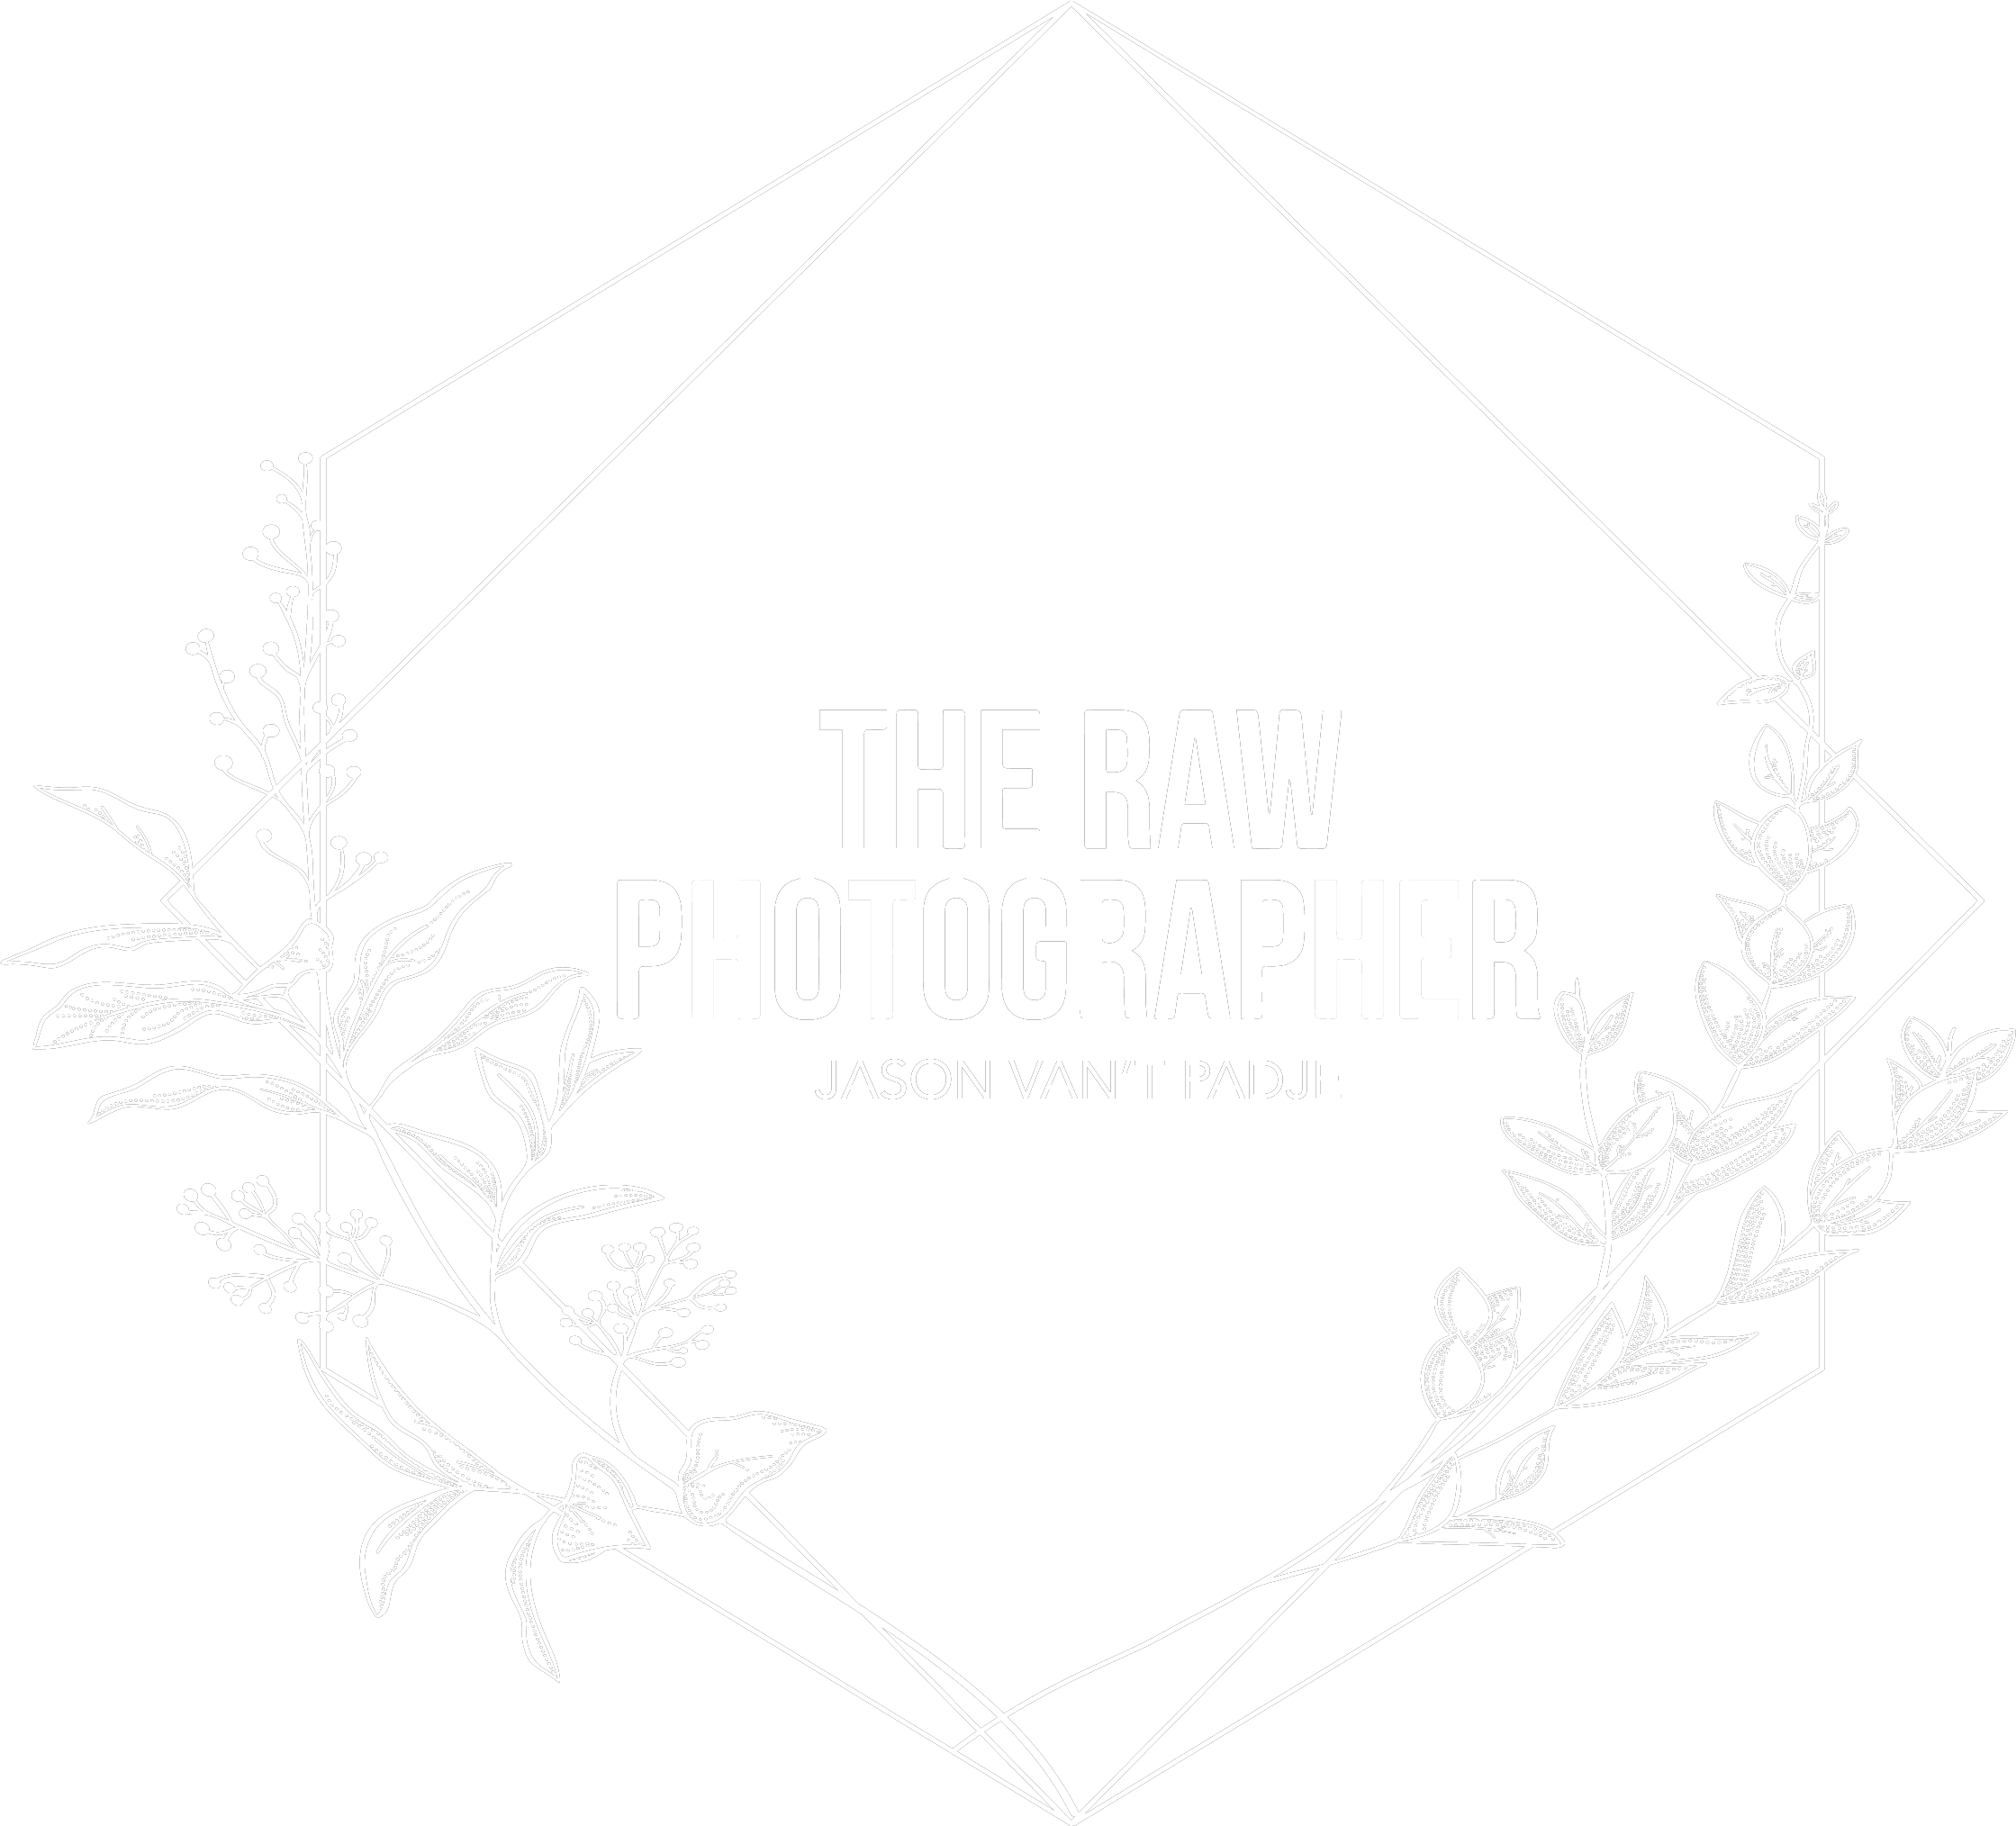 WHITE EMBLEM - The Raw Photographer